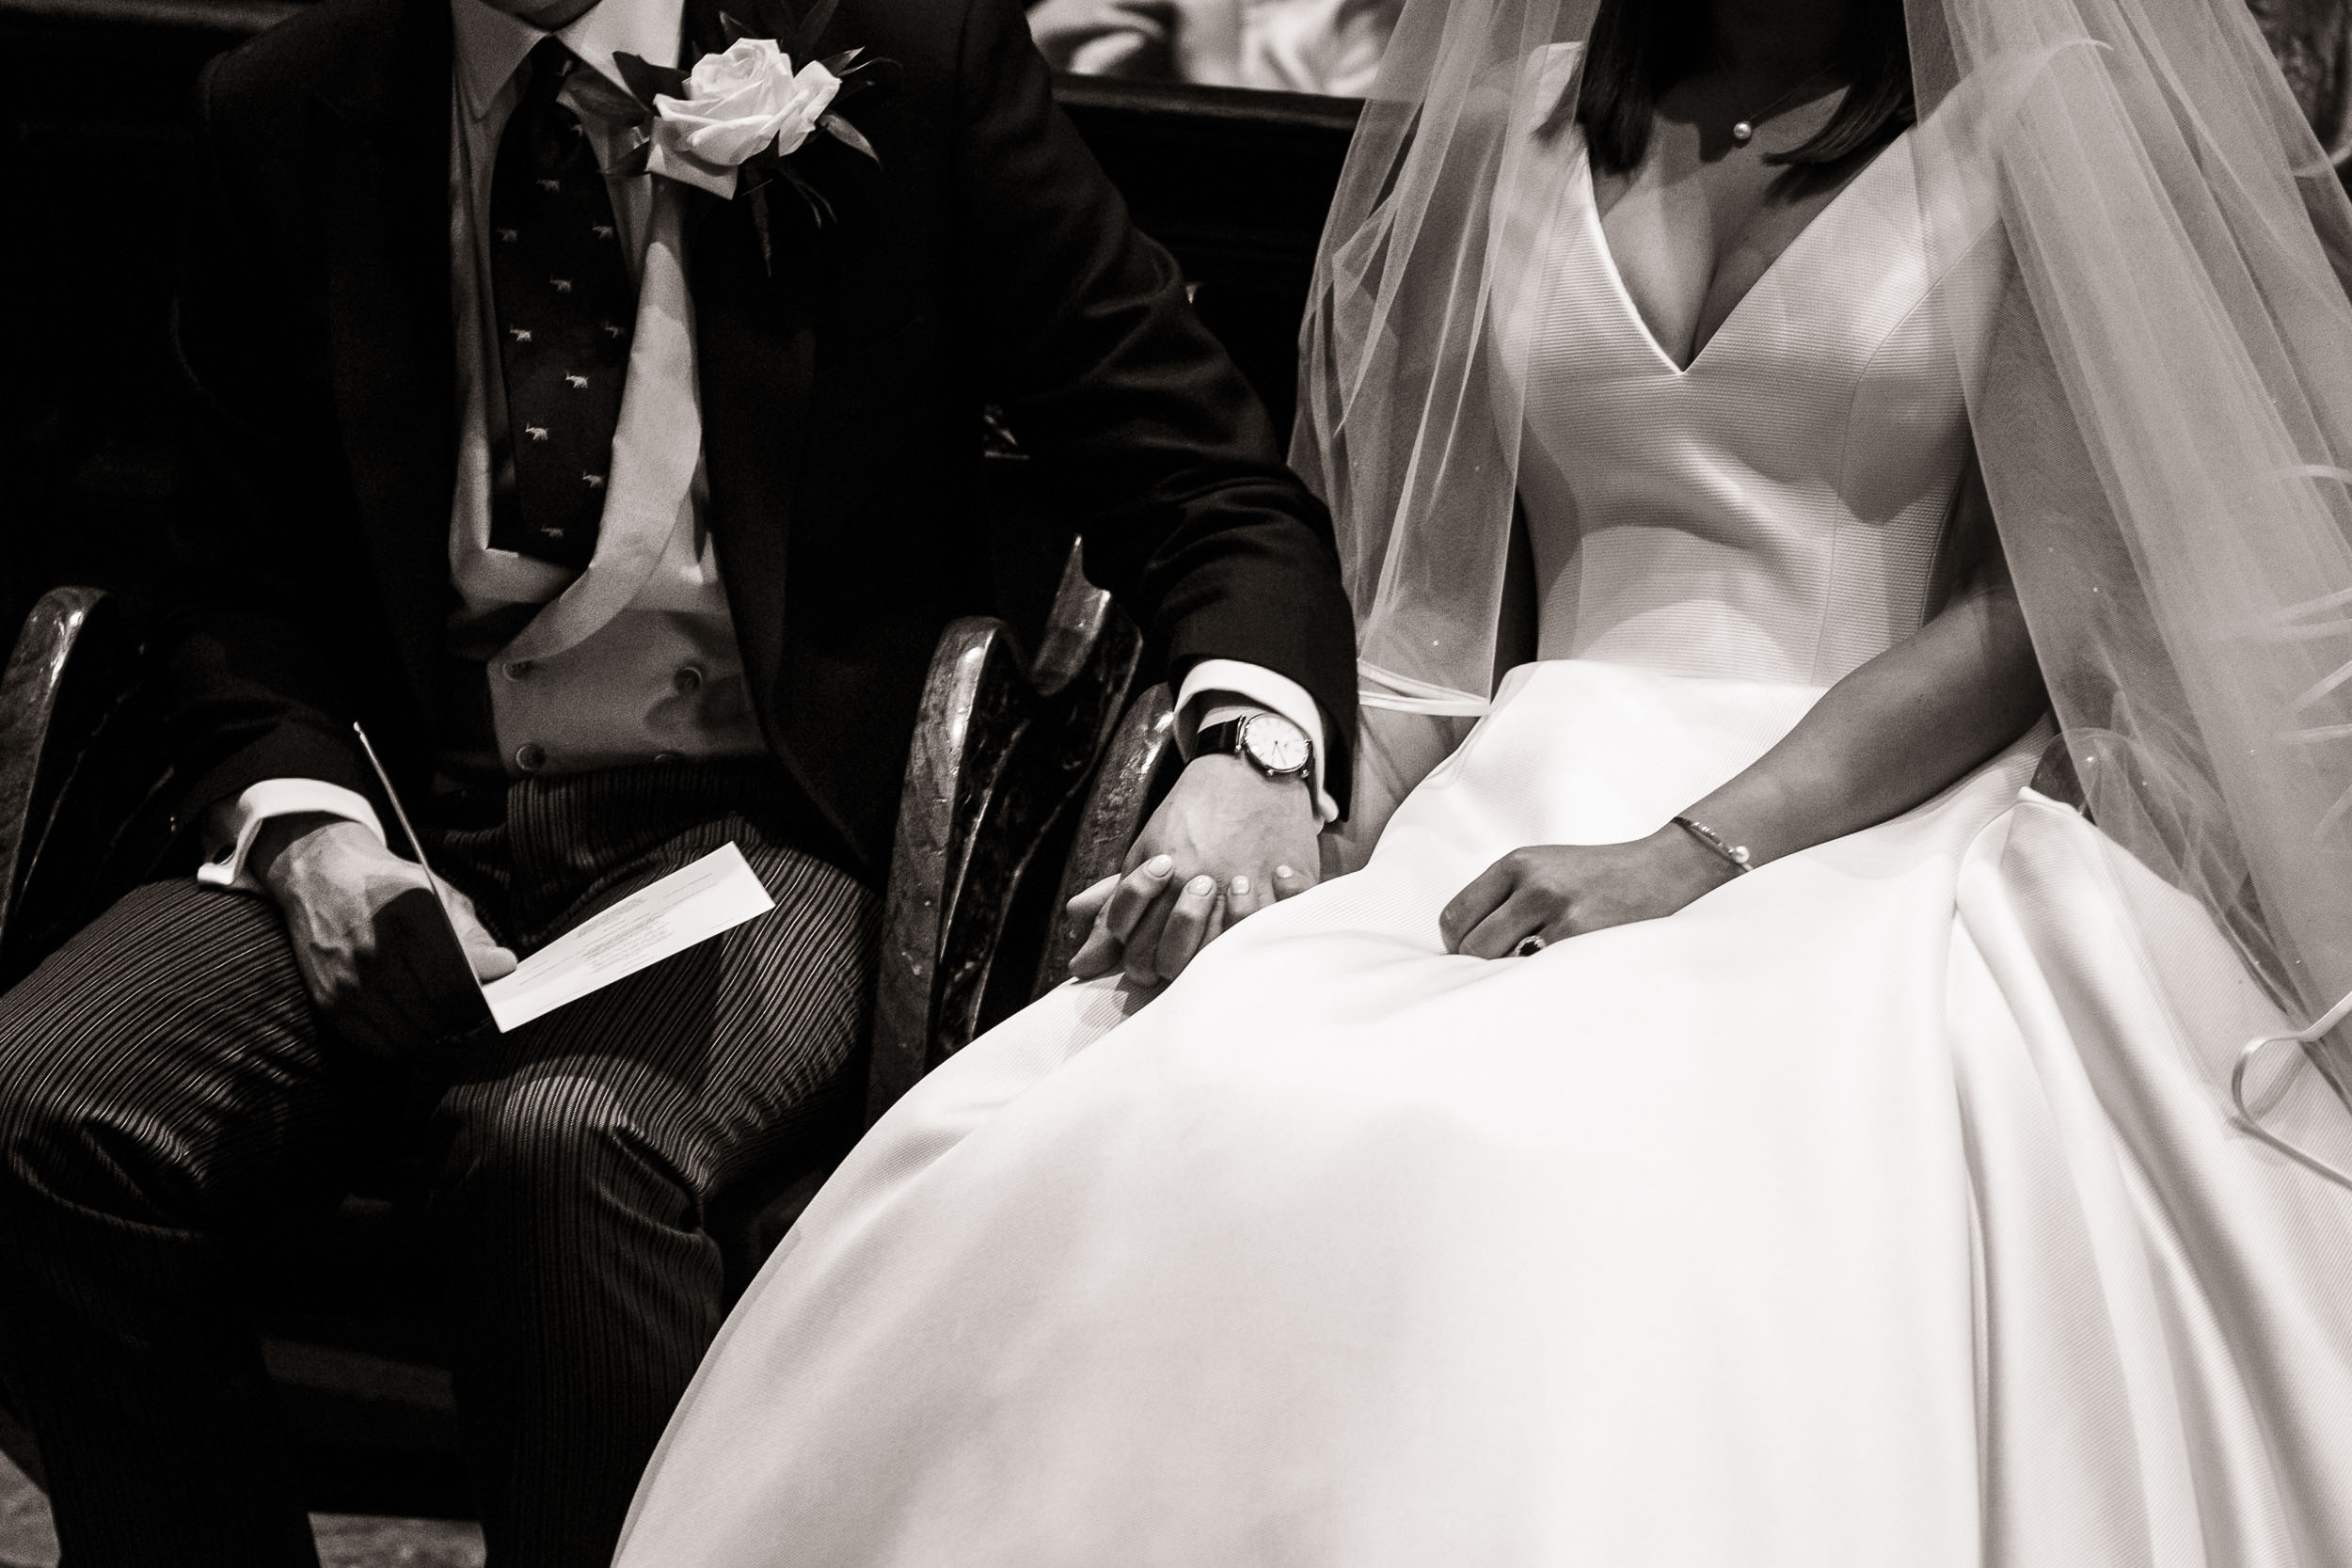 stationers-hall-wedding-photographer-london 047.jpg